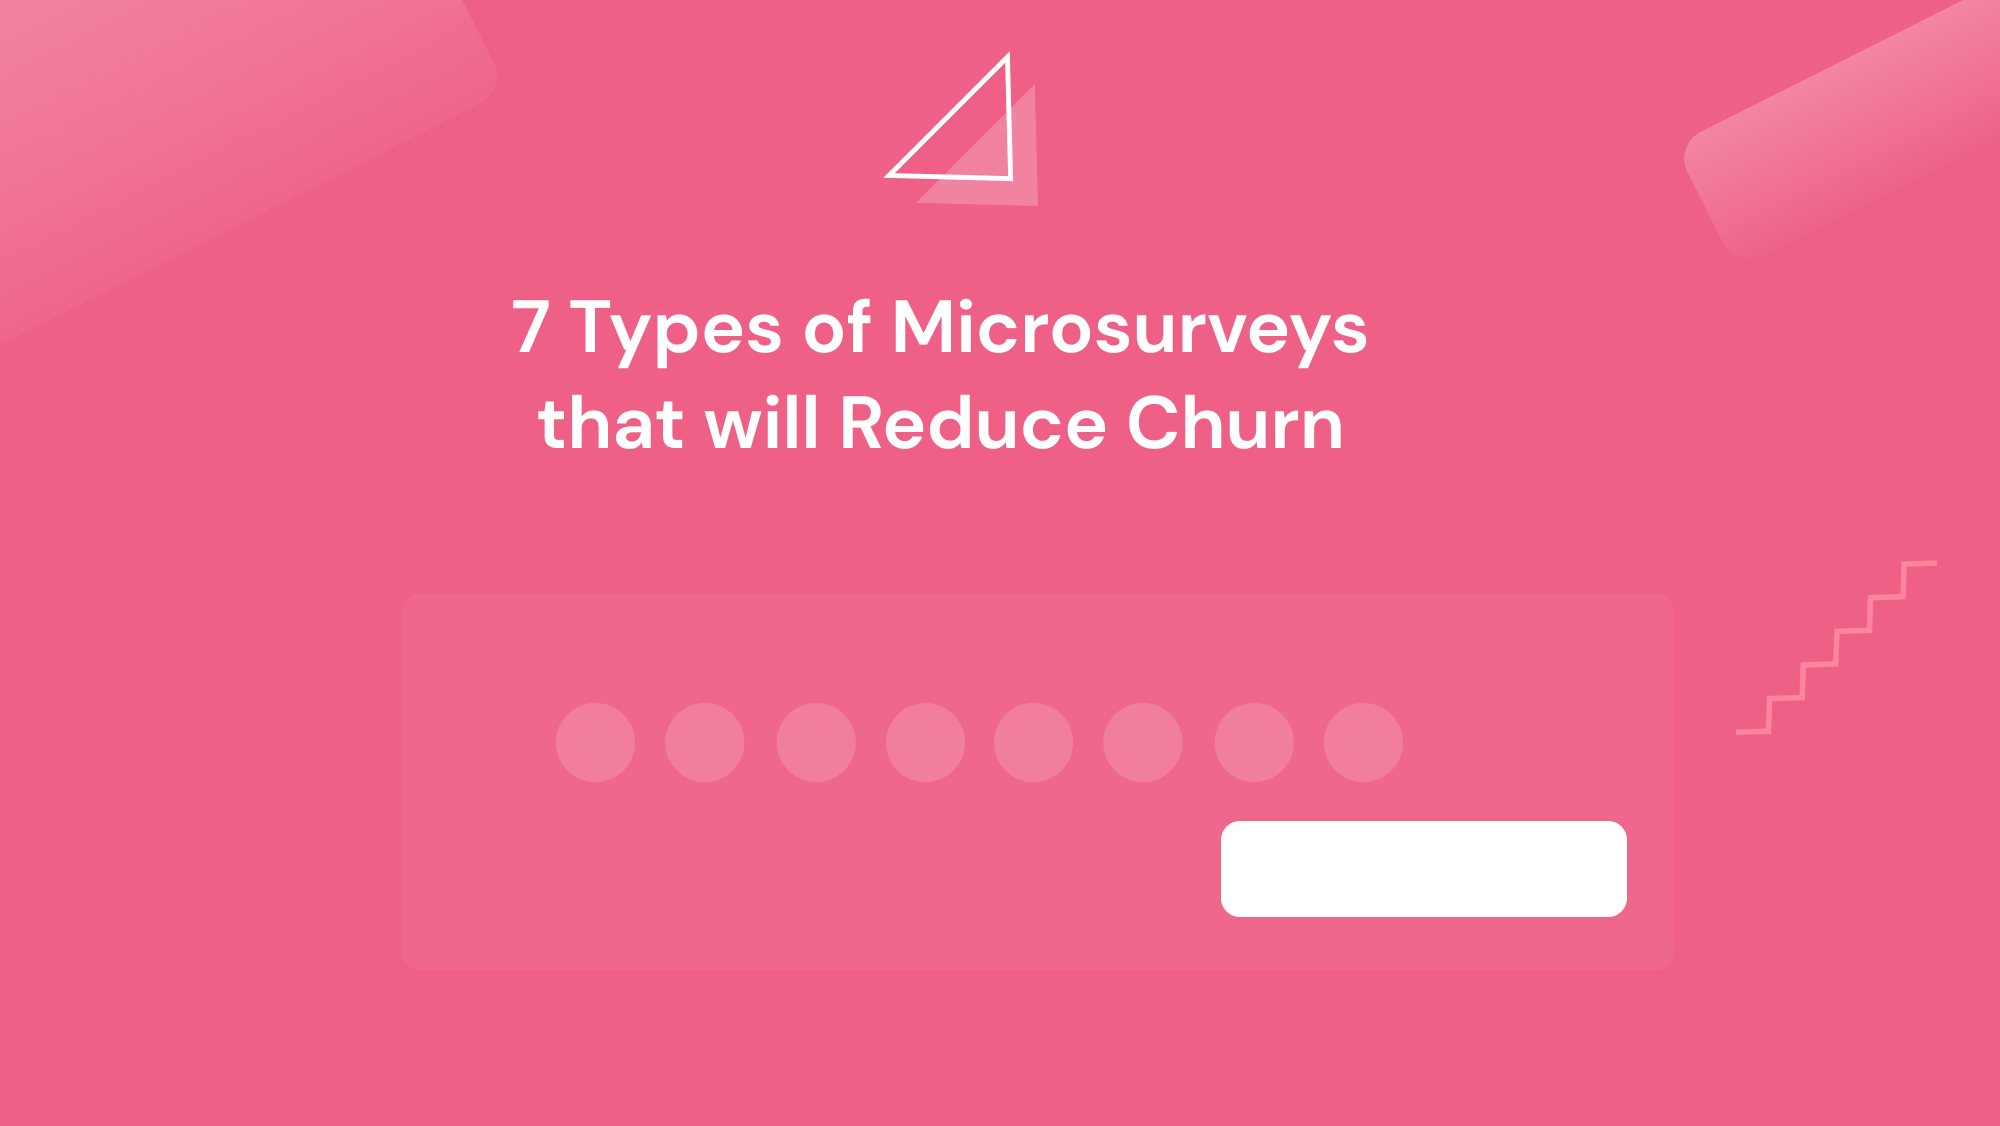 microsurveys reduce churn